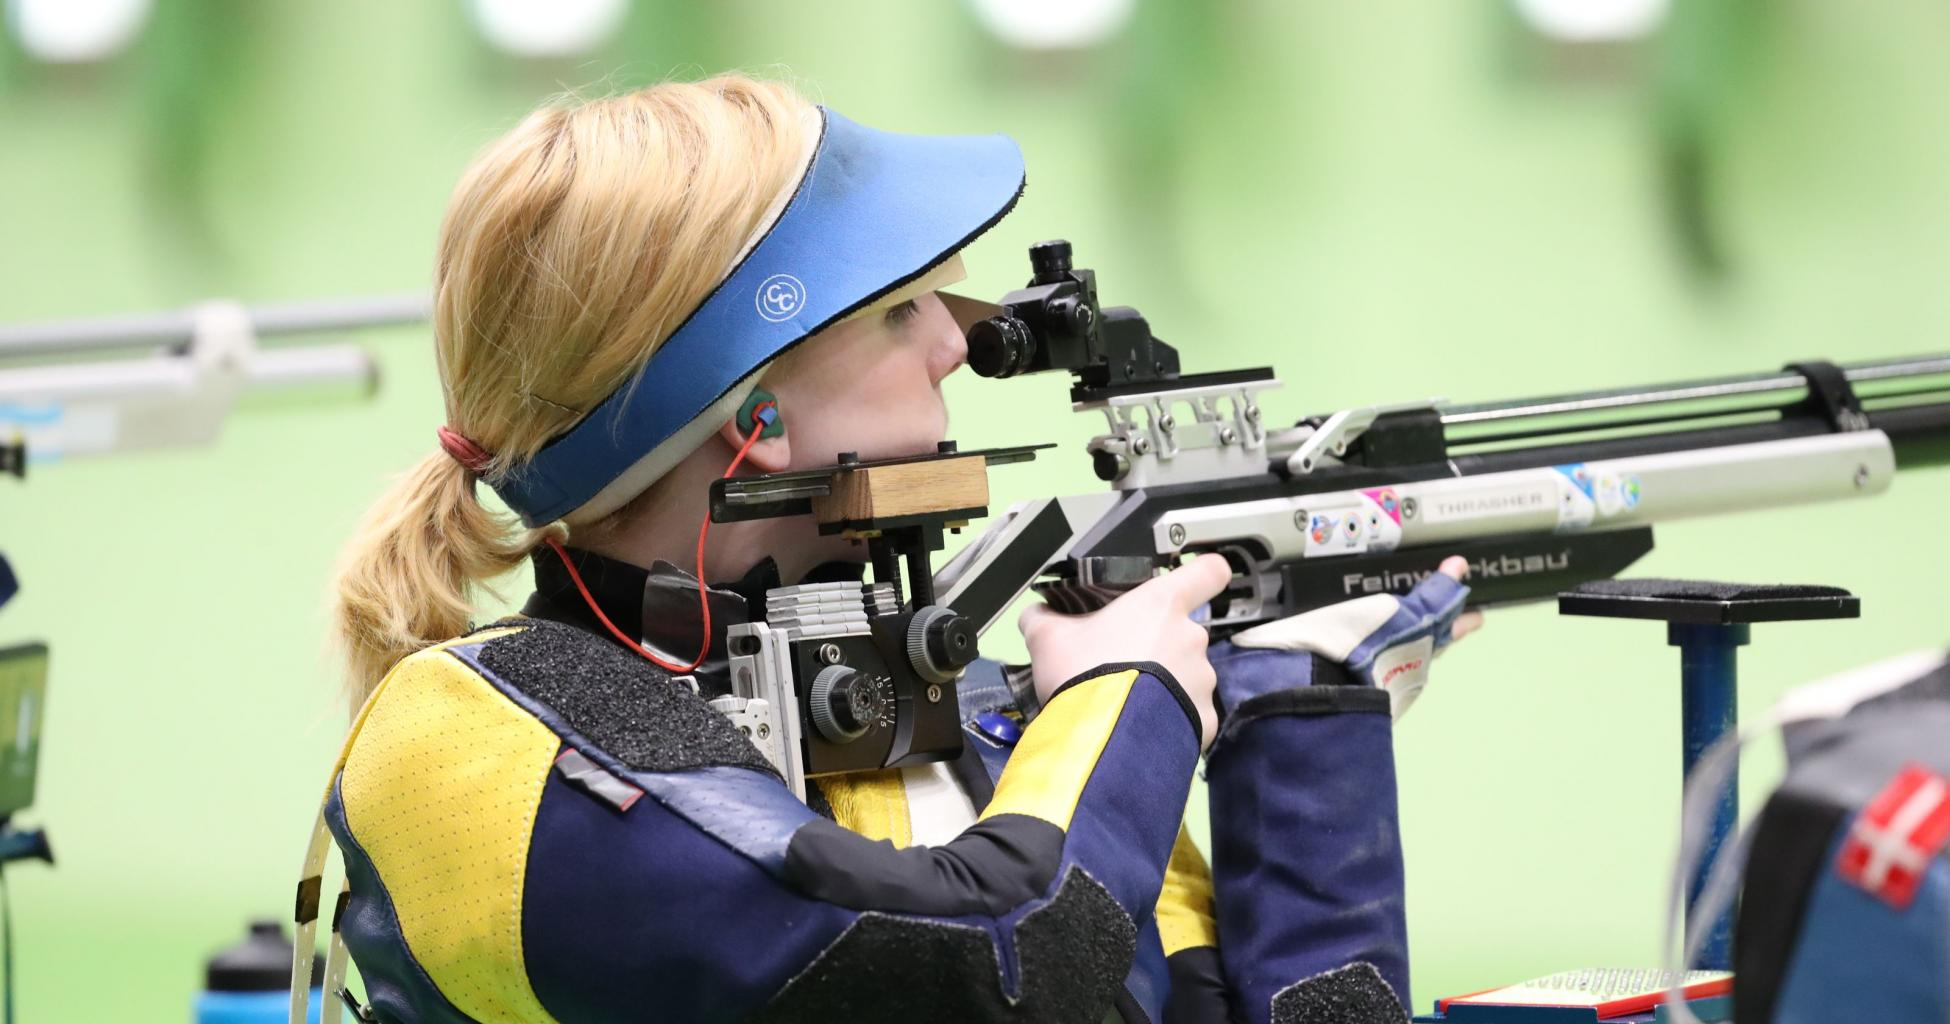 Teen shooter Ginny Thrasher wins USA's first gold medal of Rio Olympics